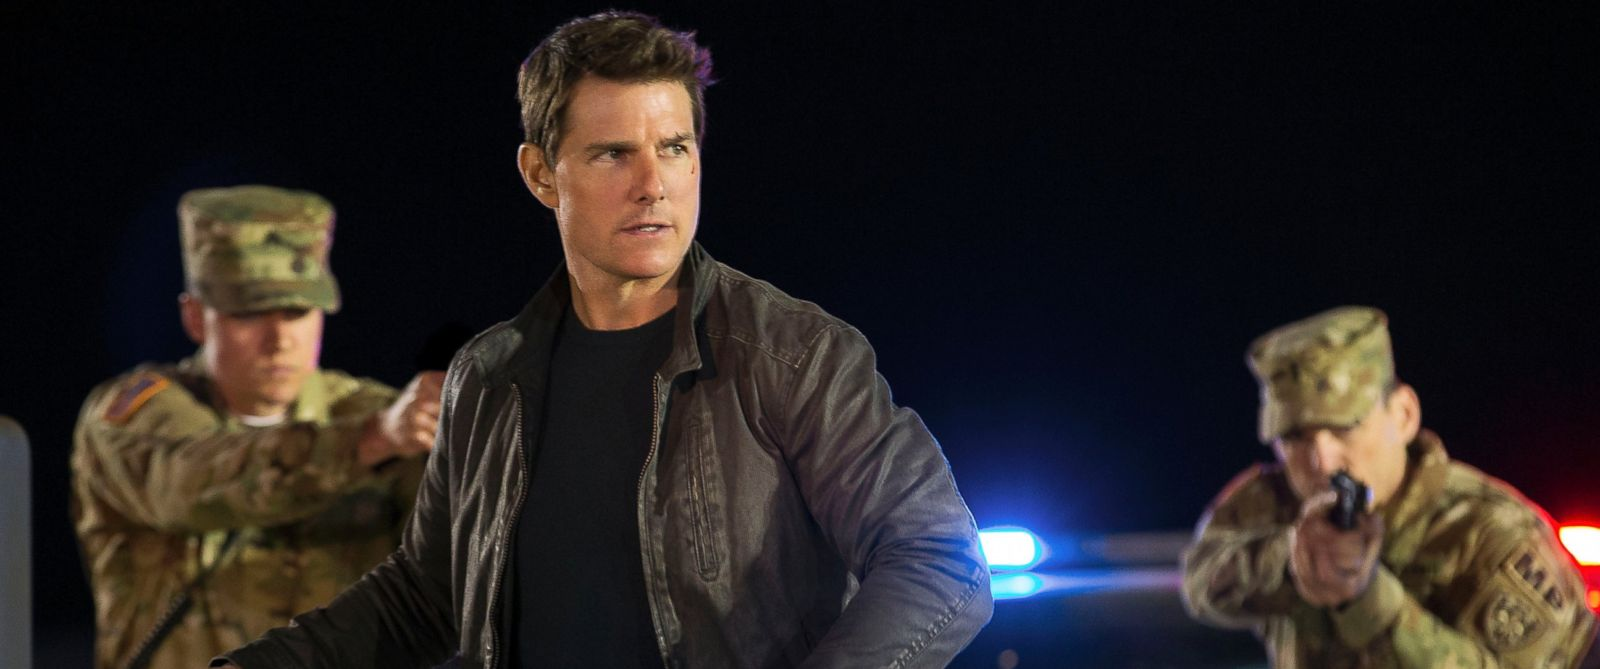 Ap_jack_reacher_jef_161020_12x5_160